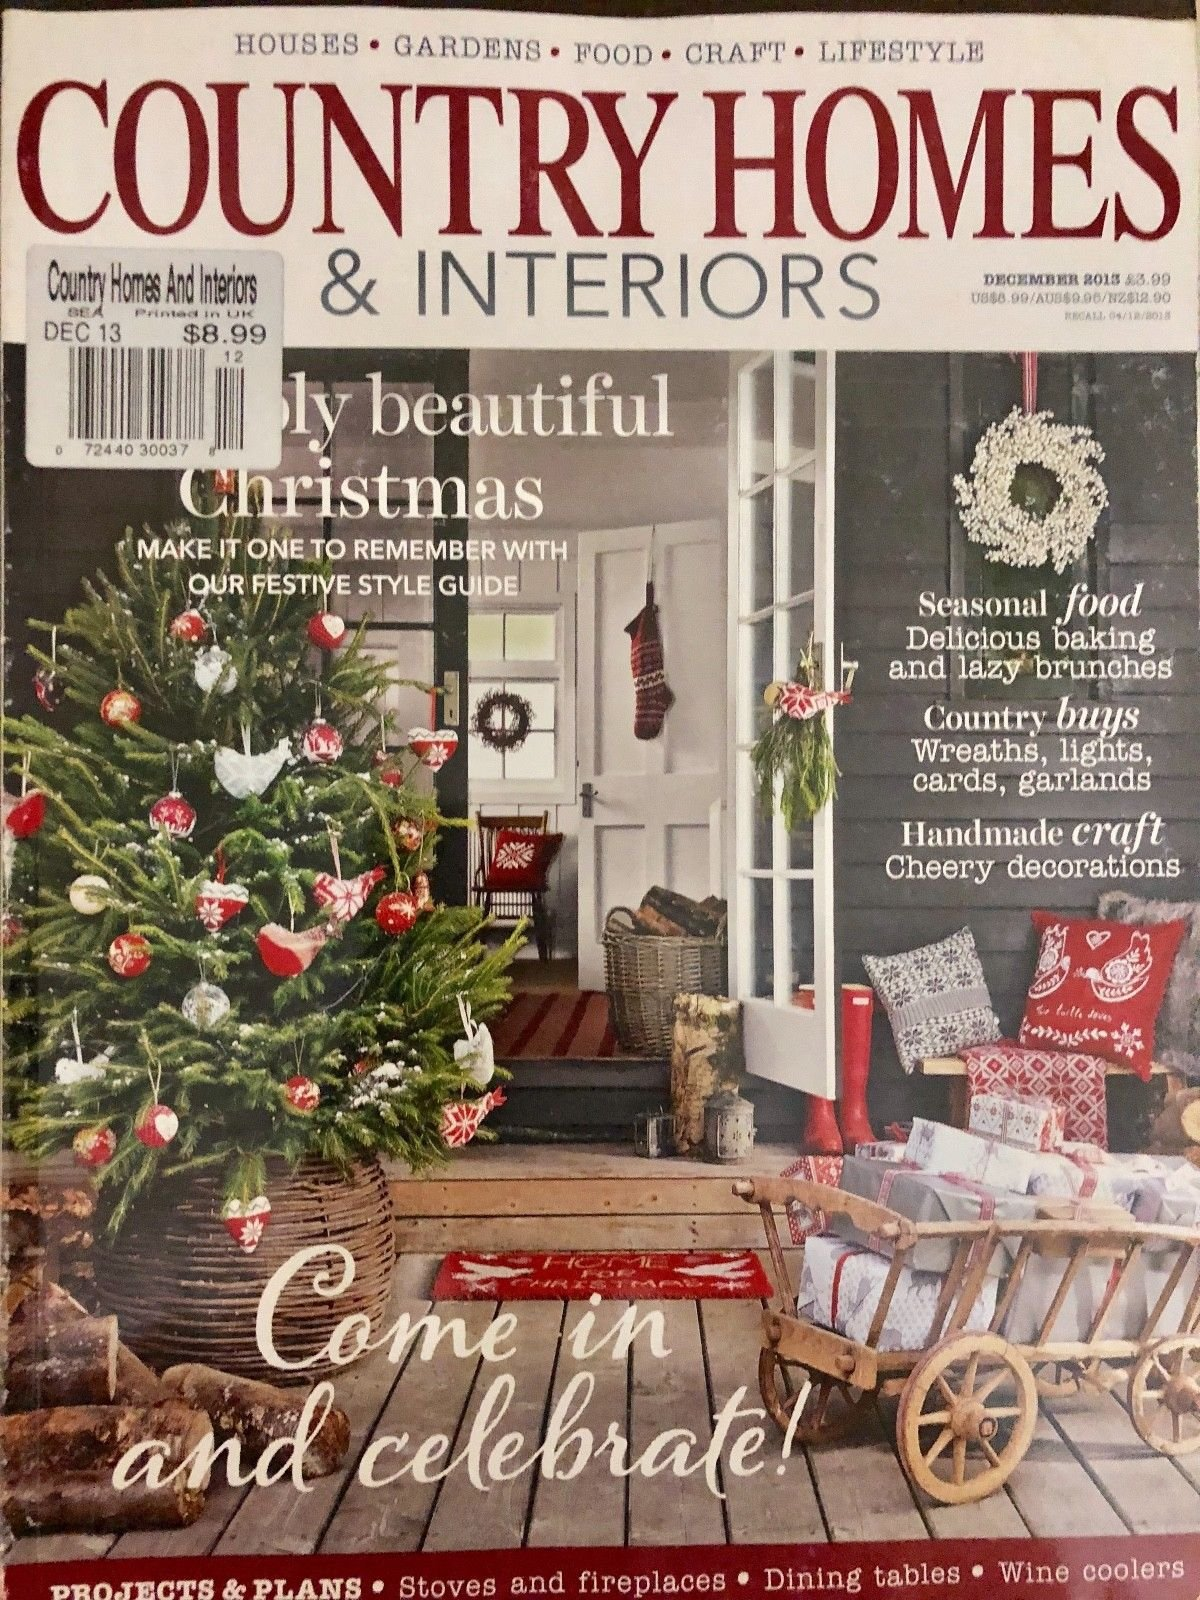 COUNTRY HOMES & INTERIORS, DECEMBER 2015**